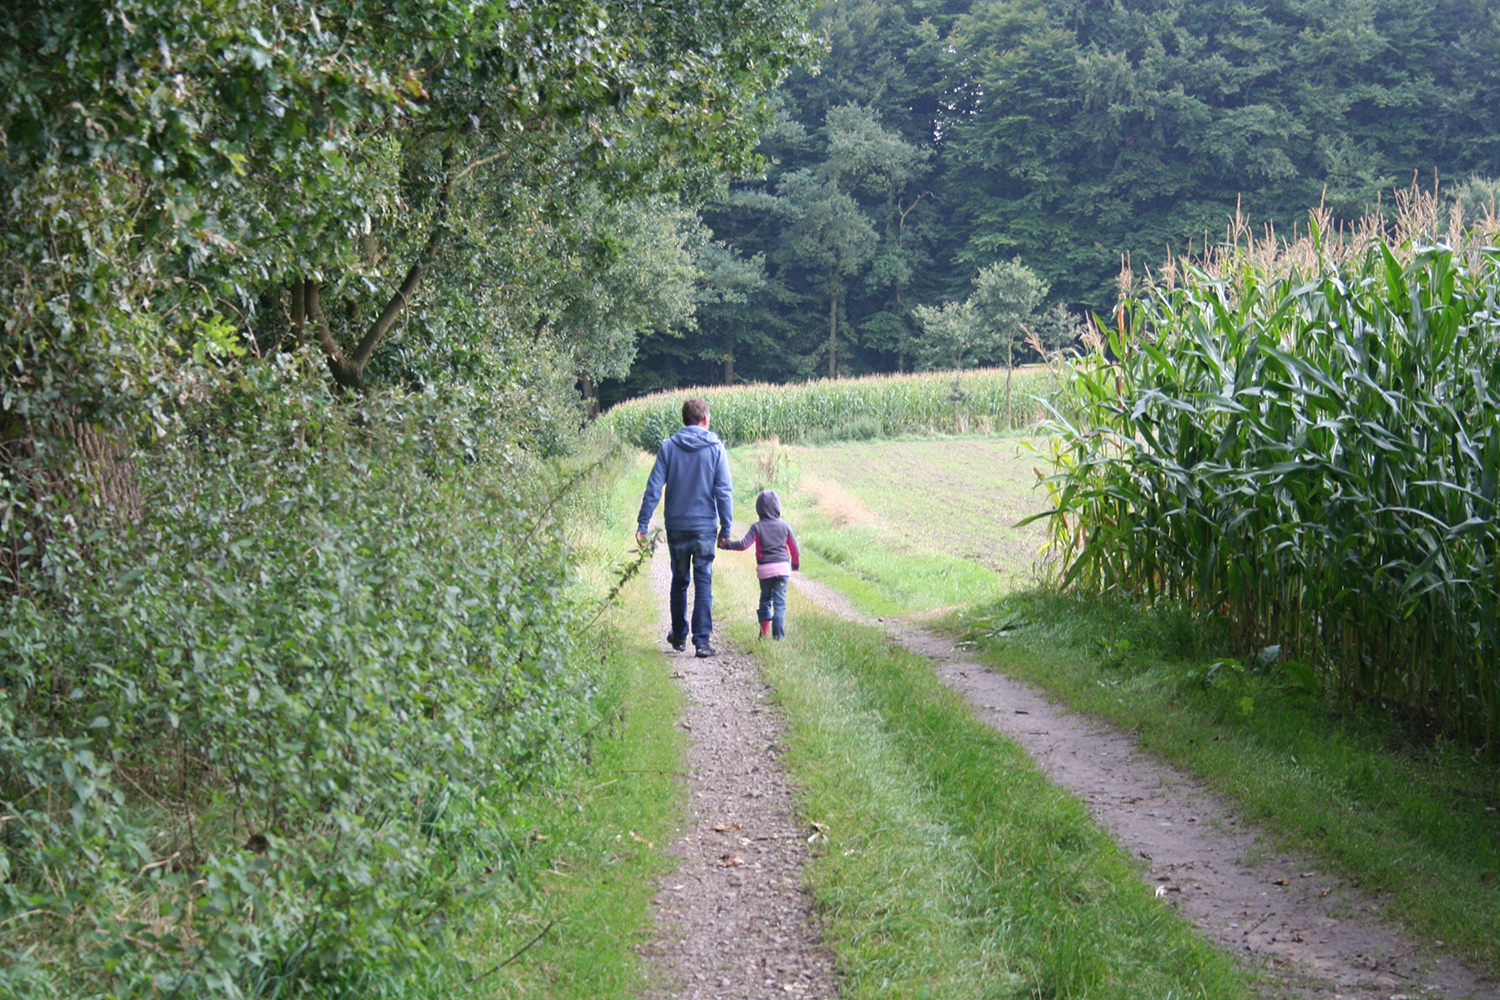 Father and daughter walking alongside a corn field